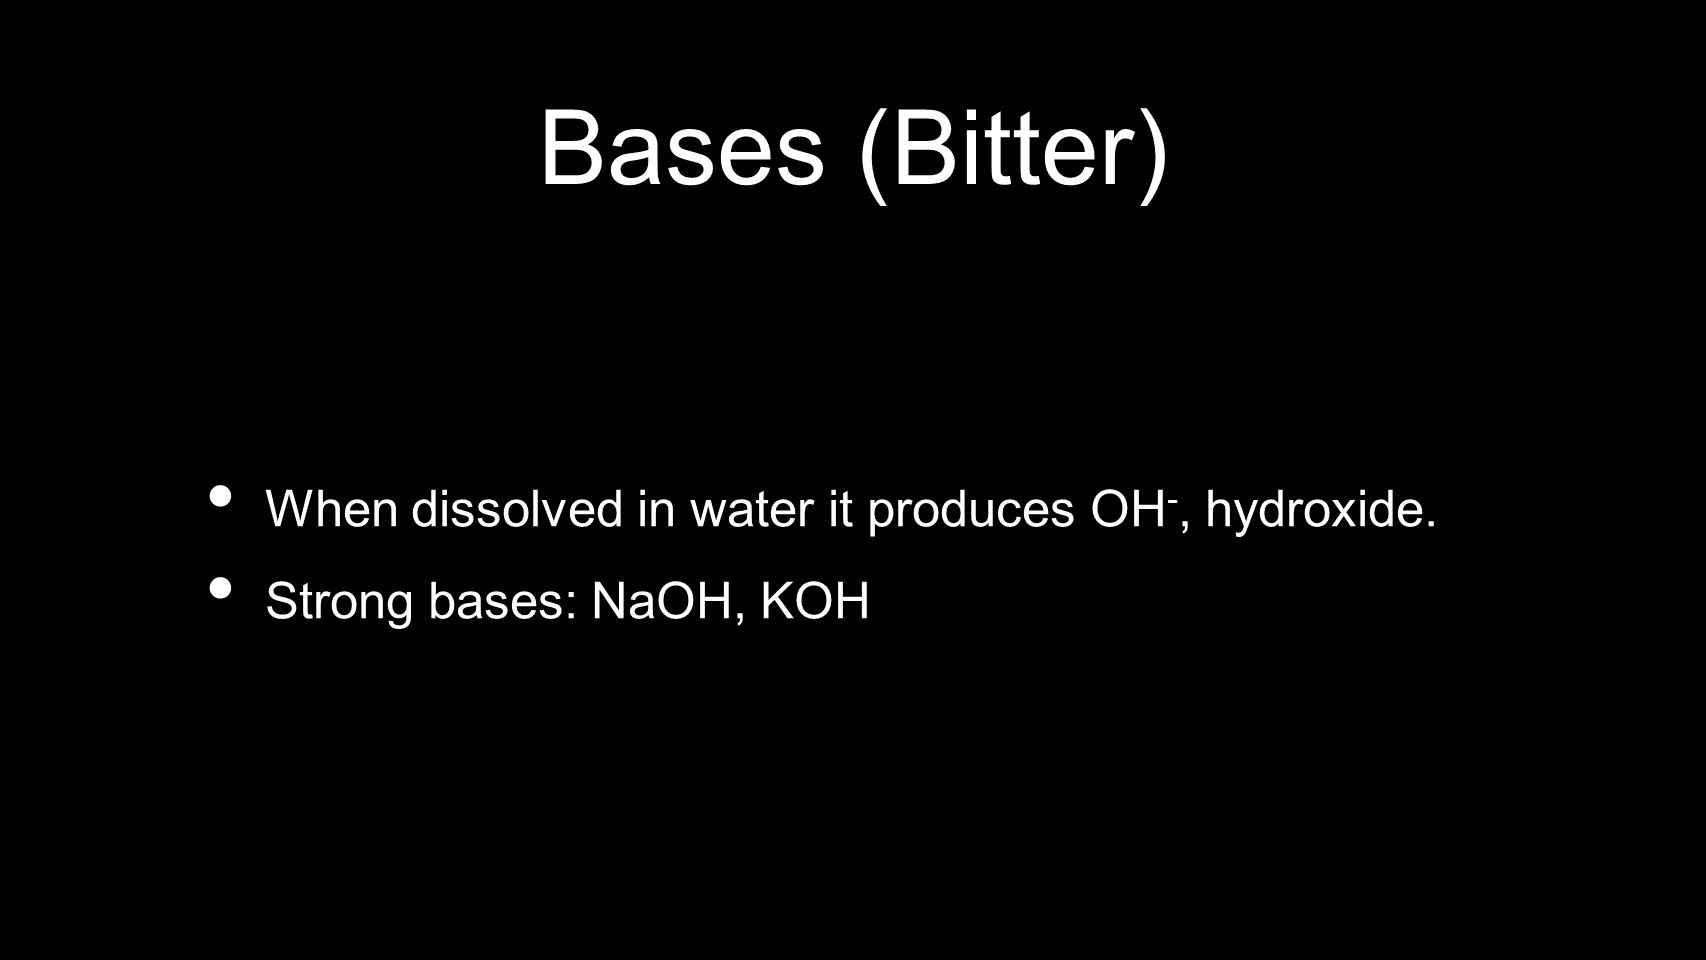 Bases (Bitter) When dissolved in water it produces OH -, hydroxide. Strong bases: NaOH, KOH